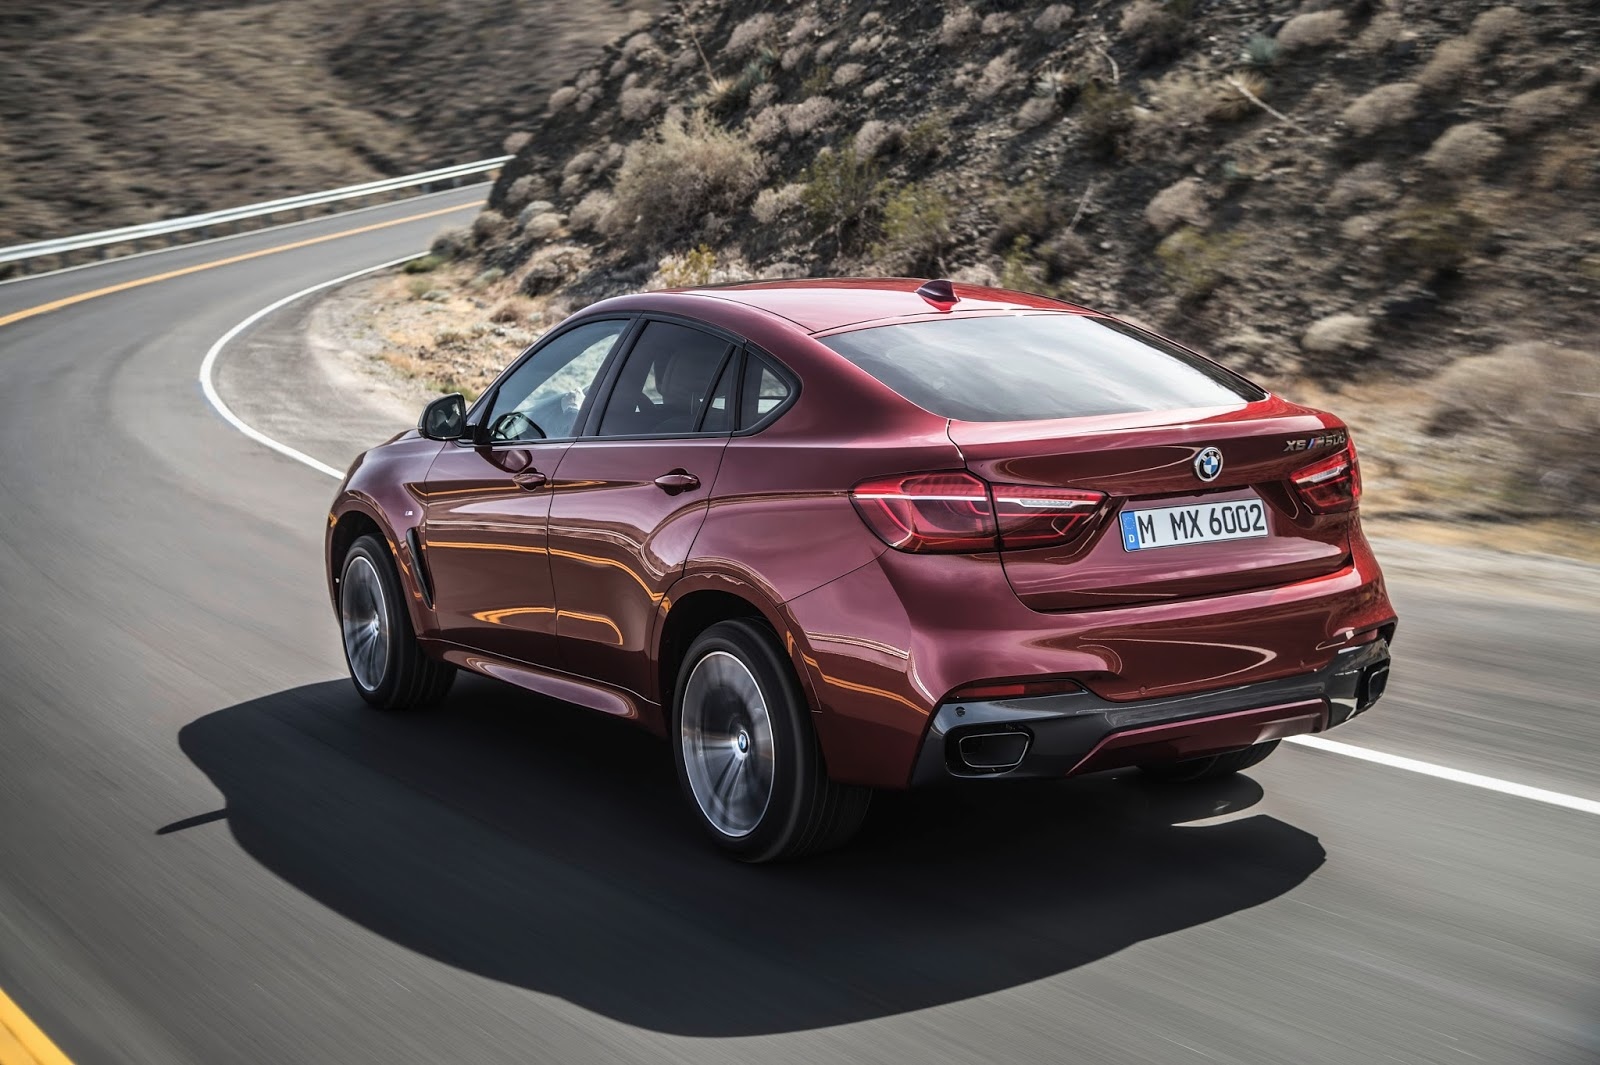 The New BMW X6 M50d